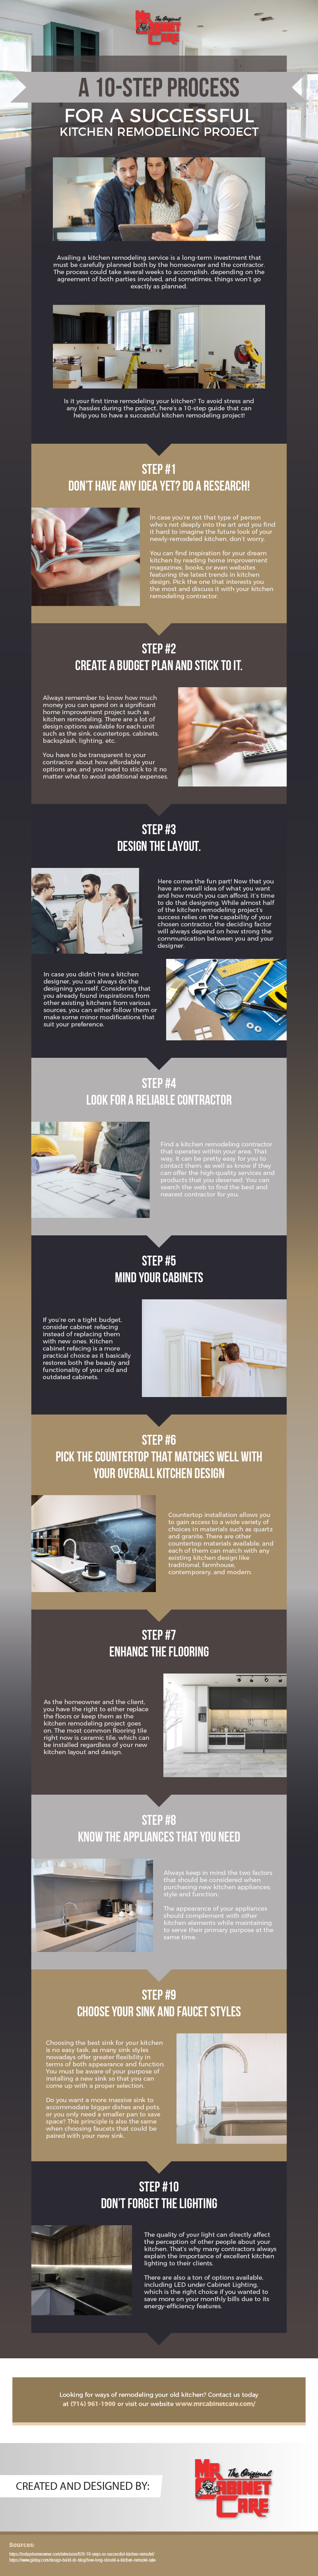 10-Step Process for a Successful Kitchen Remodeling Project – Infographic